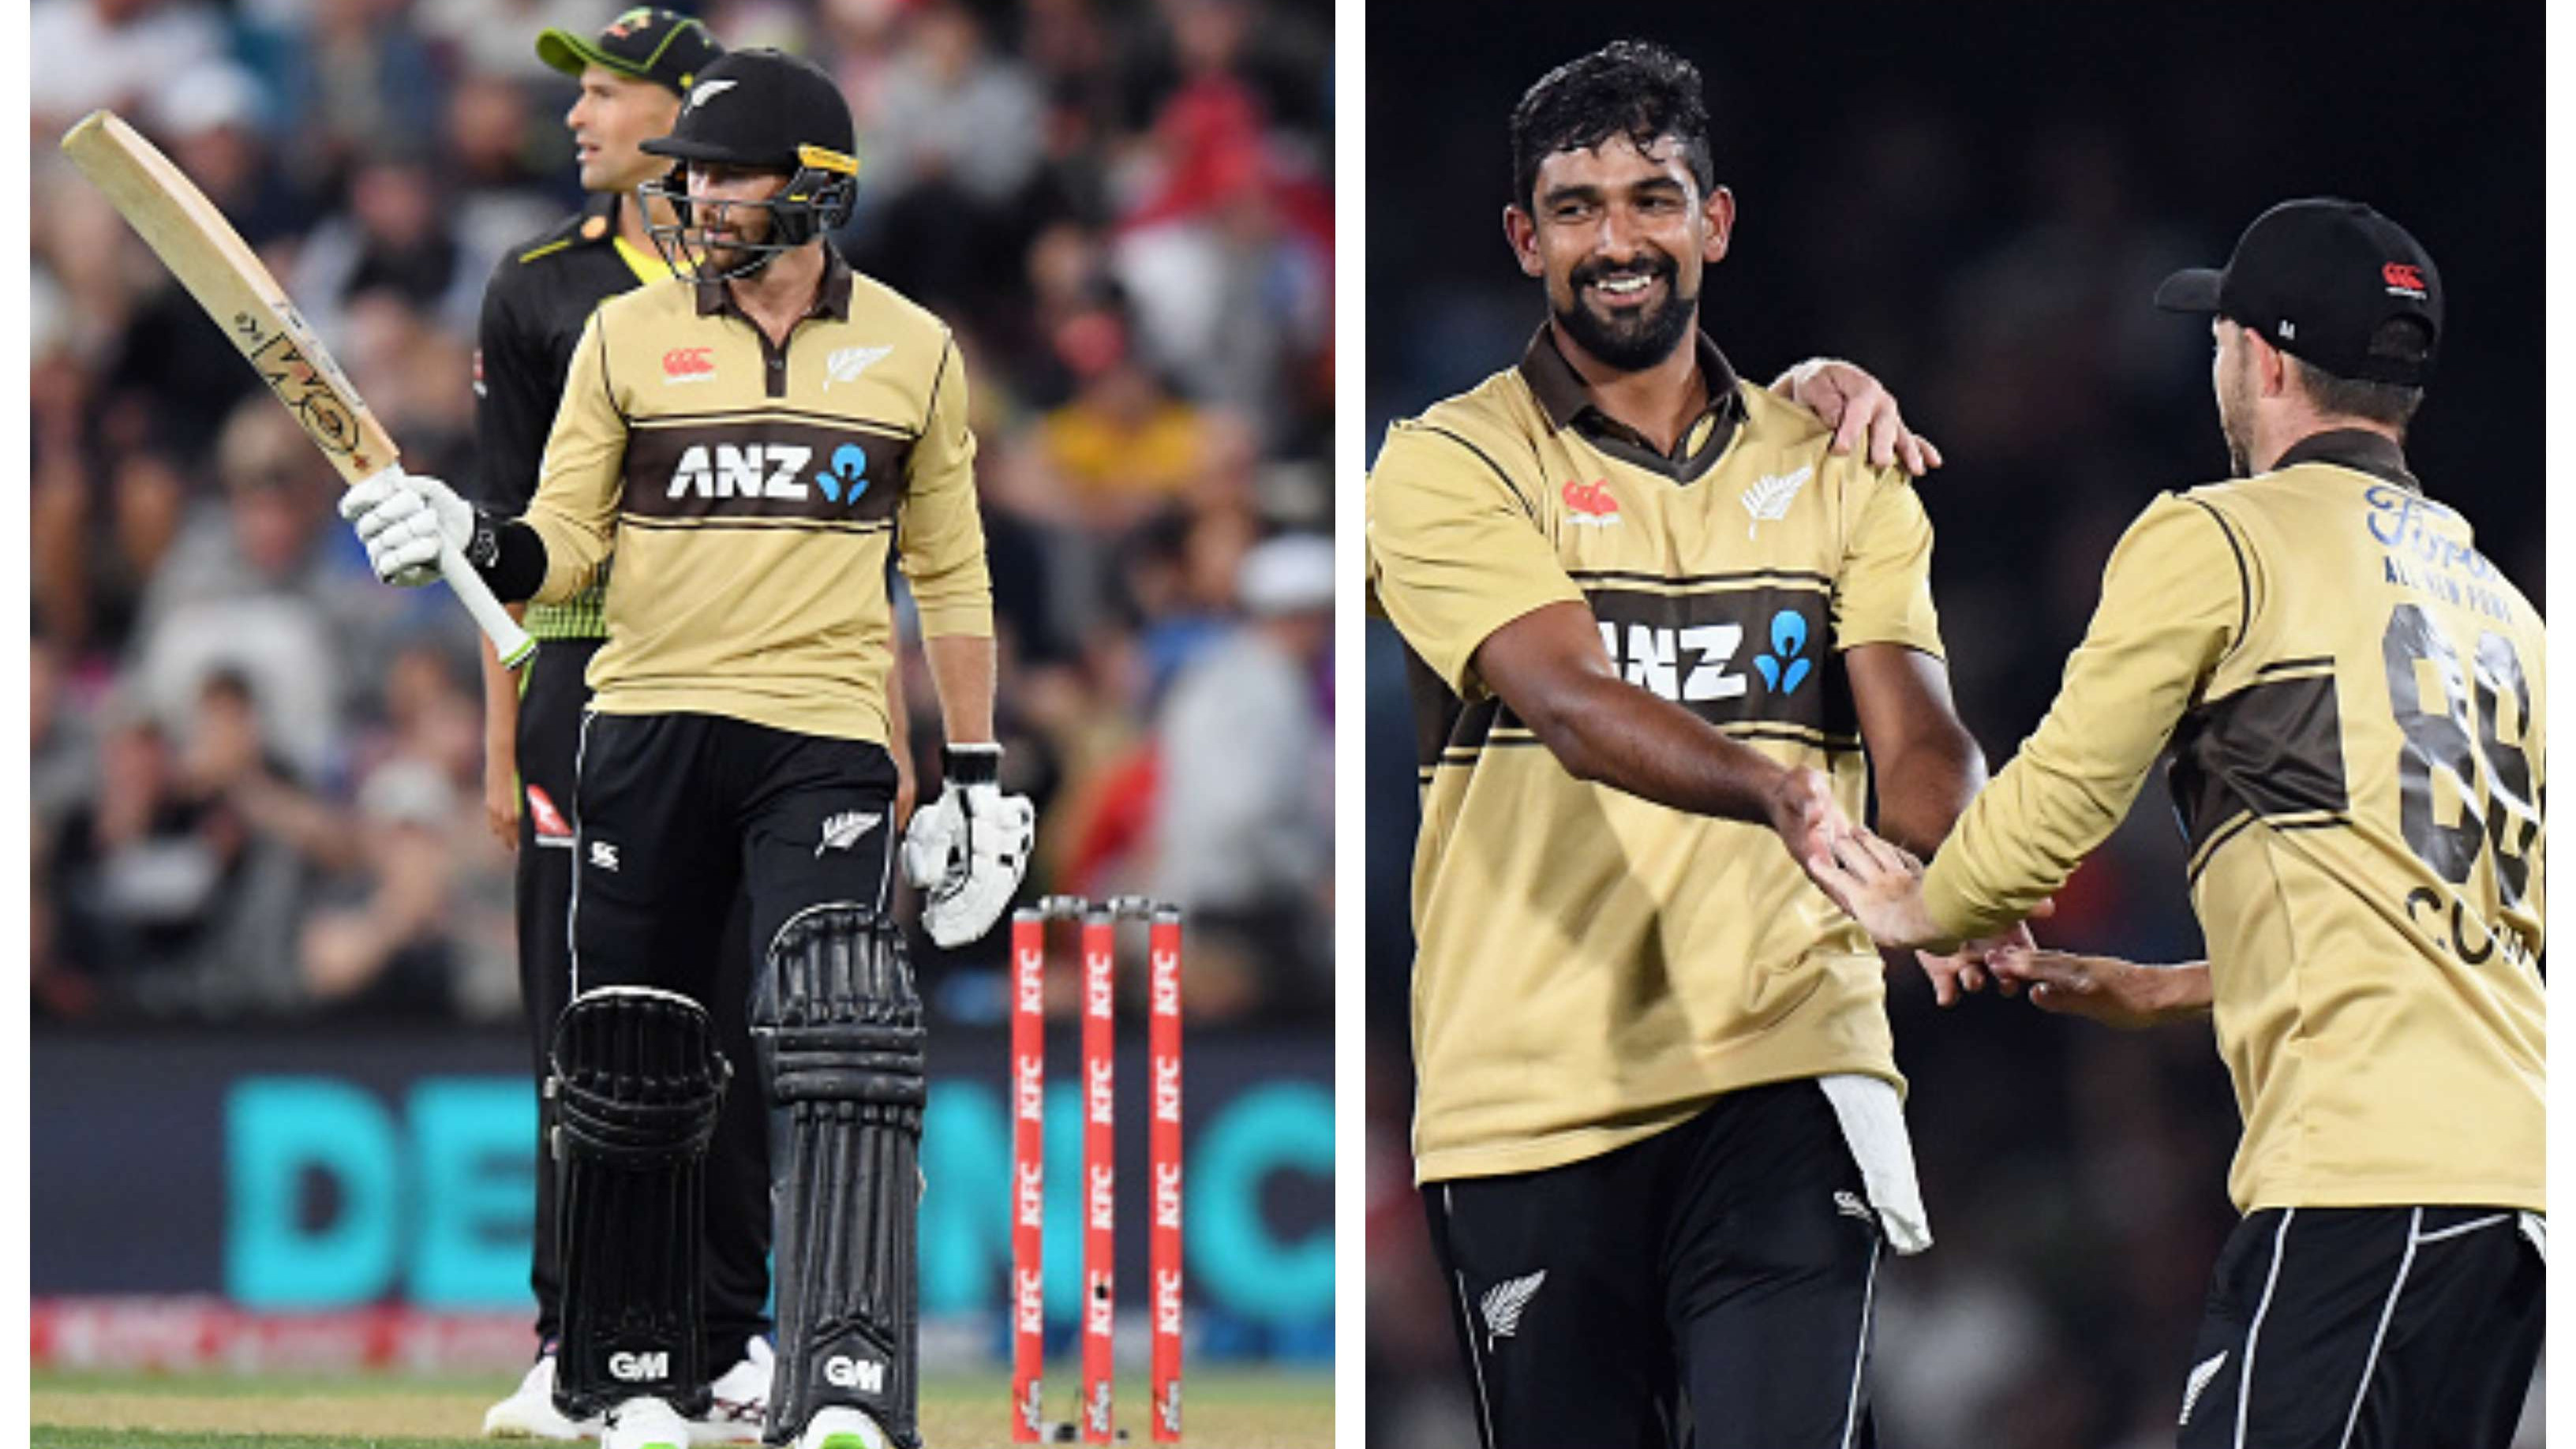 NZ v AUS 2021: Devon Conway, Ish Sodhi star in New Zealand's 53-run win over Australia in 1st T20I